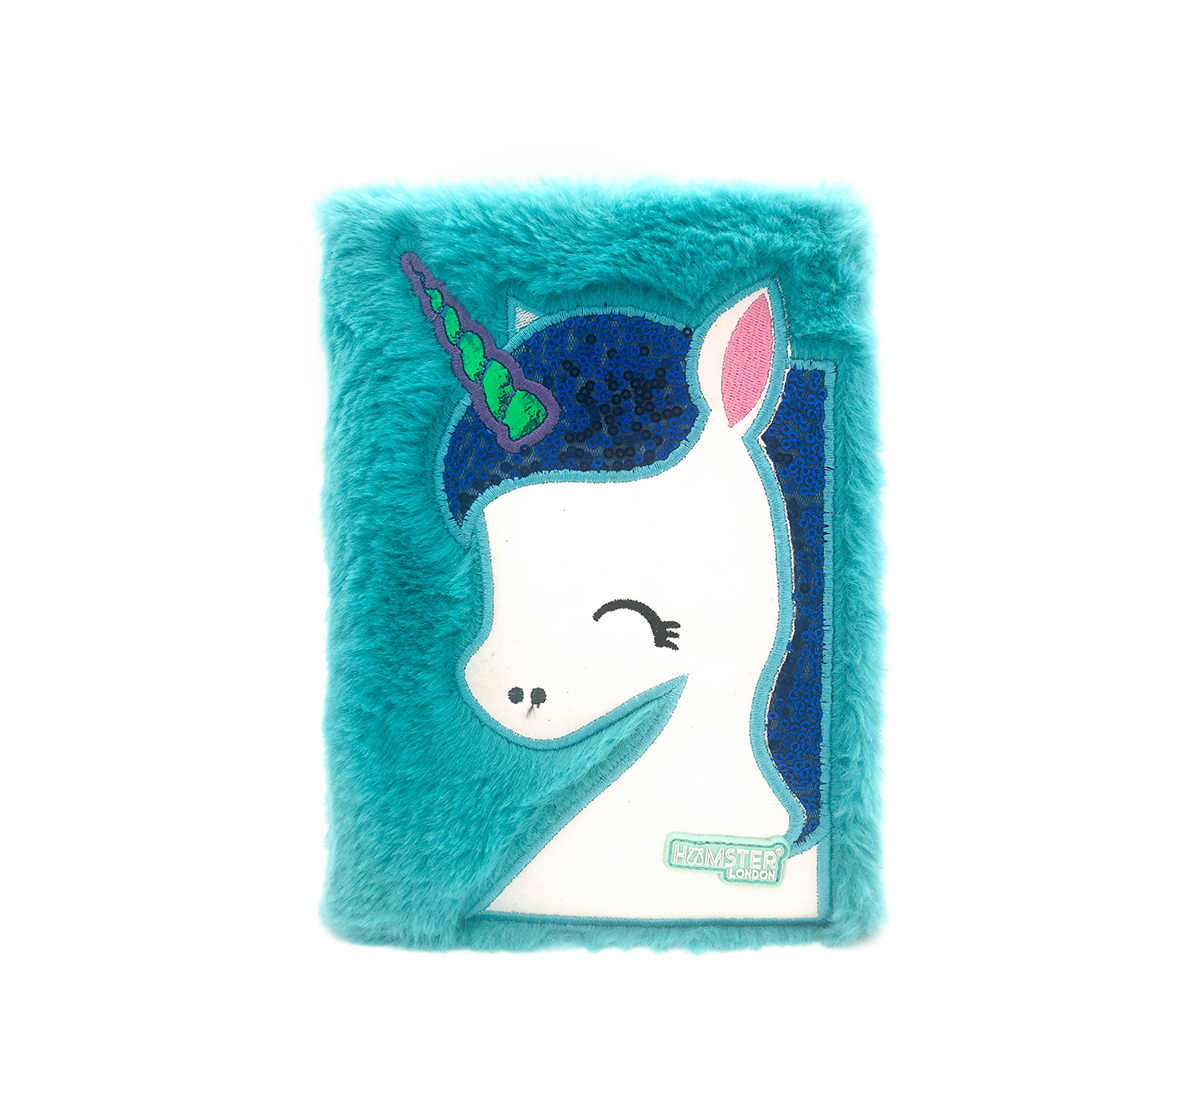 Hamster London | Hamster London Unicorn Diary for Kids age 3Y+ (Green)